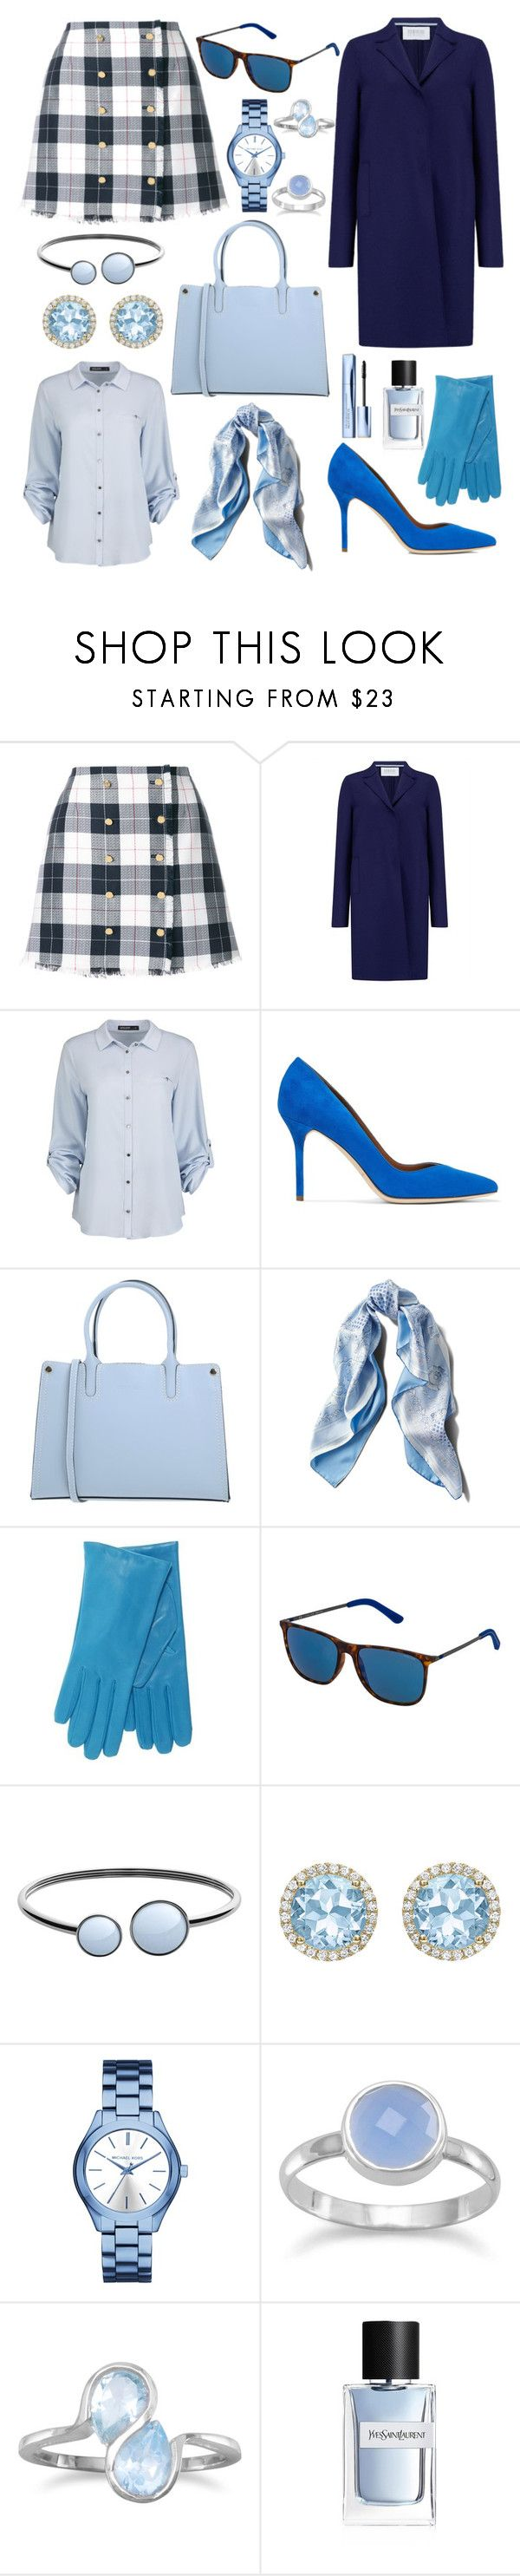 """""""Untitled #110"""" by doctorlia ❤ liked on Polyvore featuring Thom Browne, Harris Wharf London, Malone Souliers, Manoukian, Asprey, POLICE, Skagen, Kiki mcdonough, MICHAEL Michael Kors and BillyTheTree"""